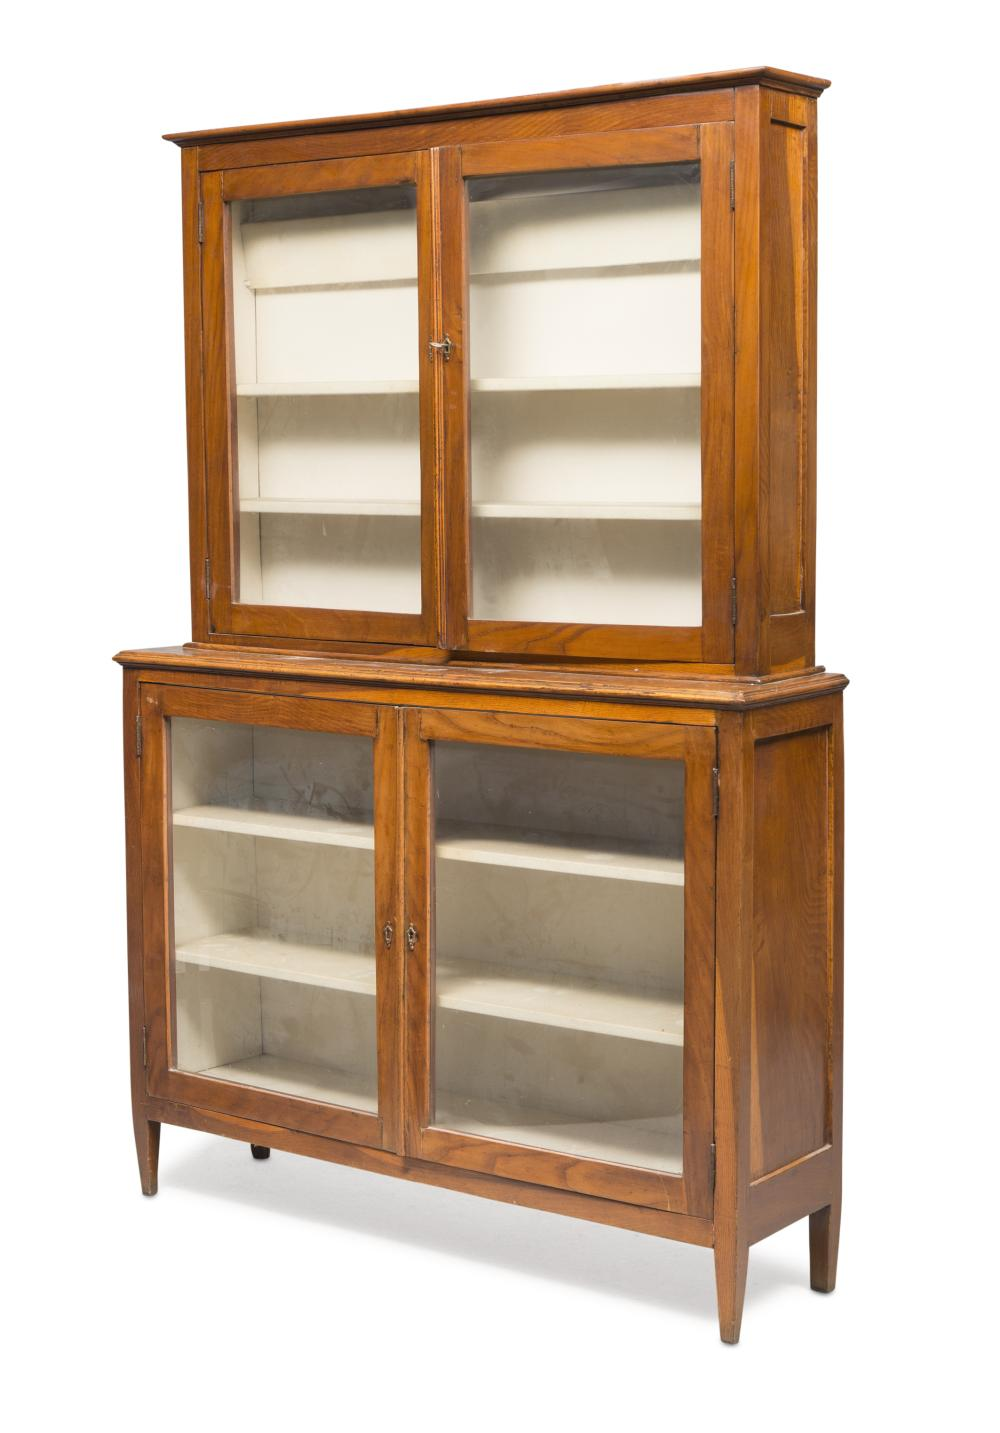 BOOKCASE CABINET IN WALNUT, CENTRAL ITALY EARLY 19TH CENTURY